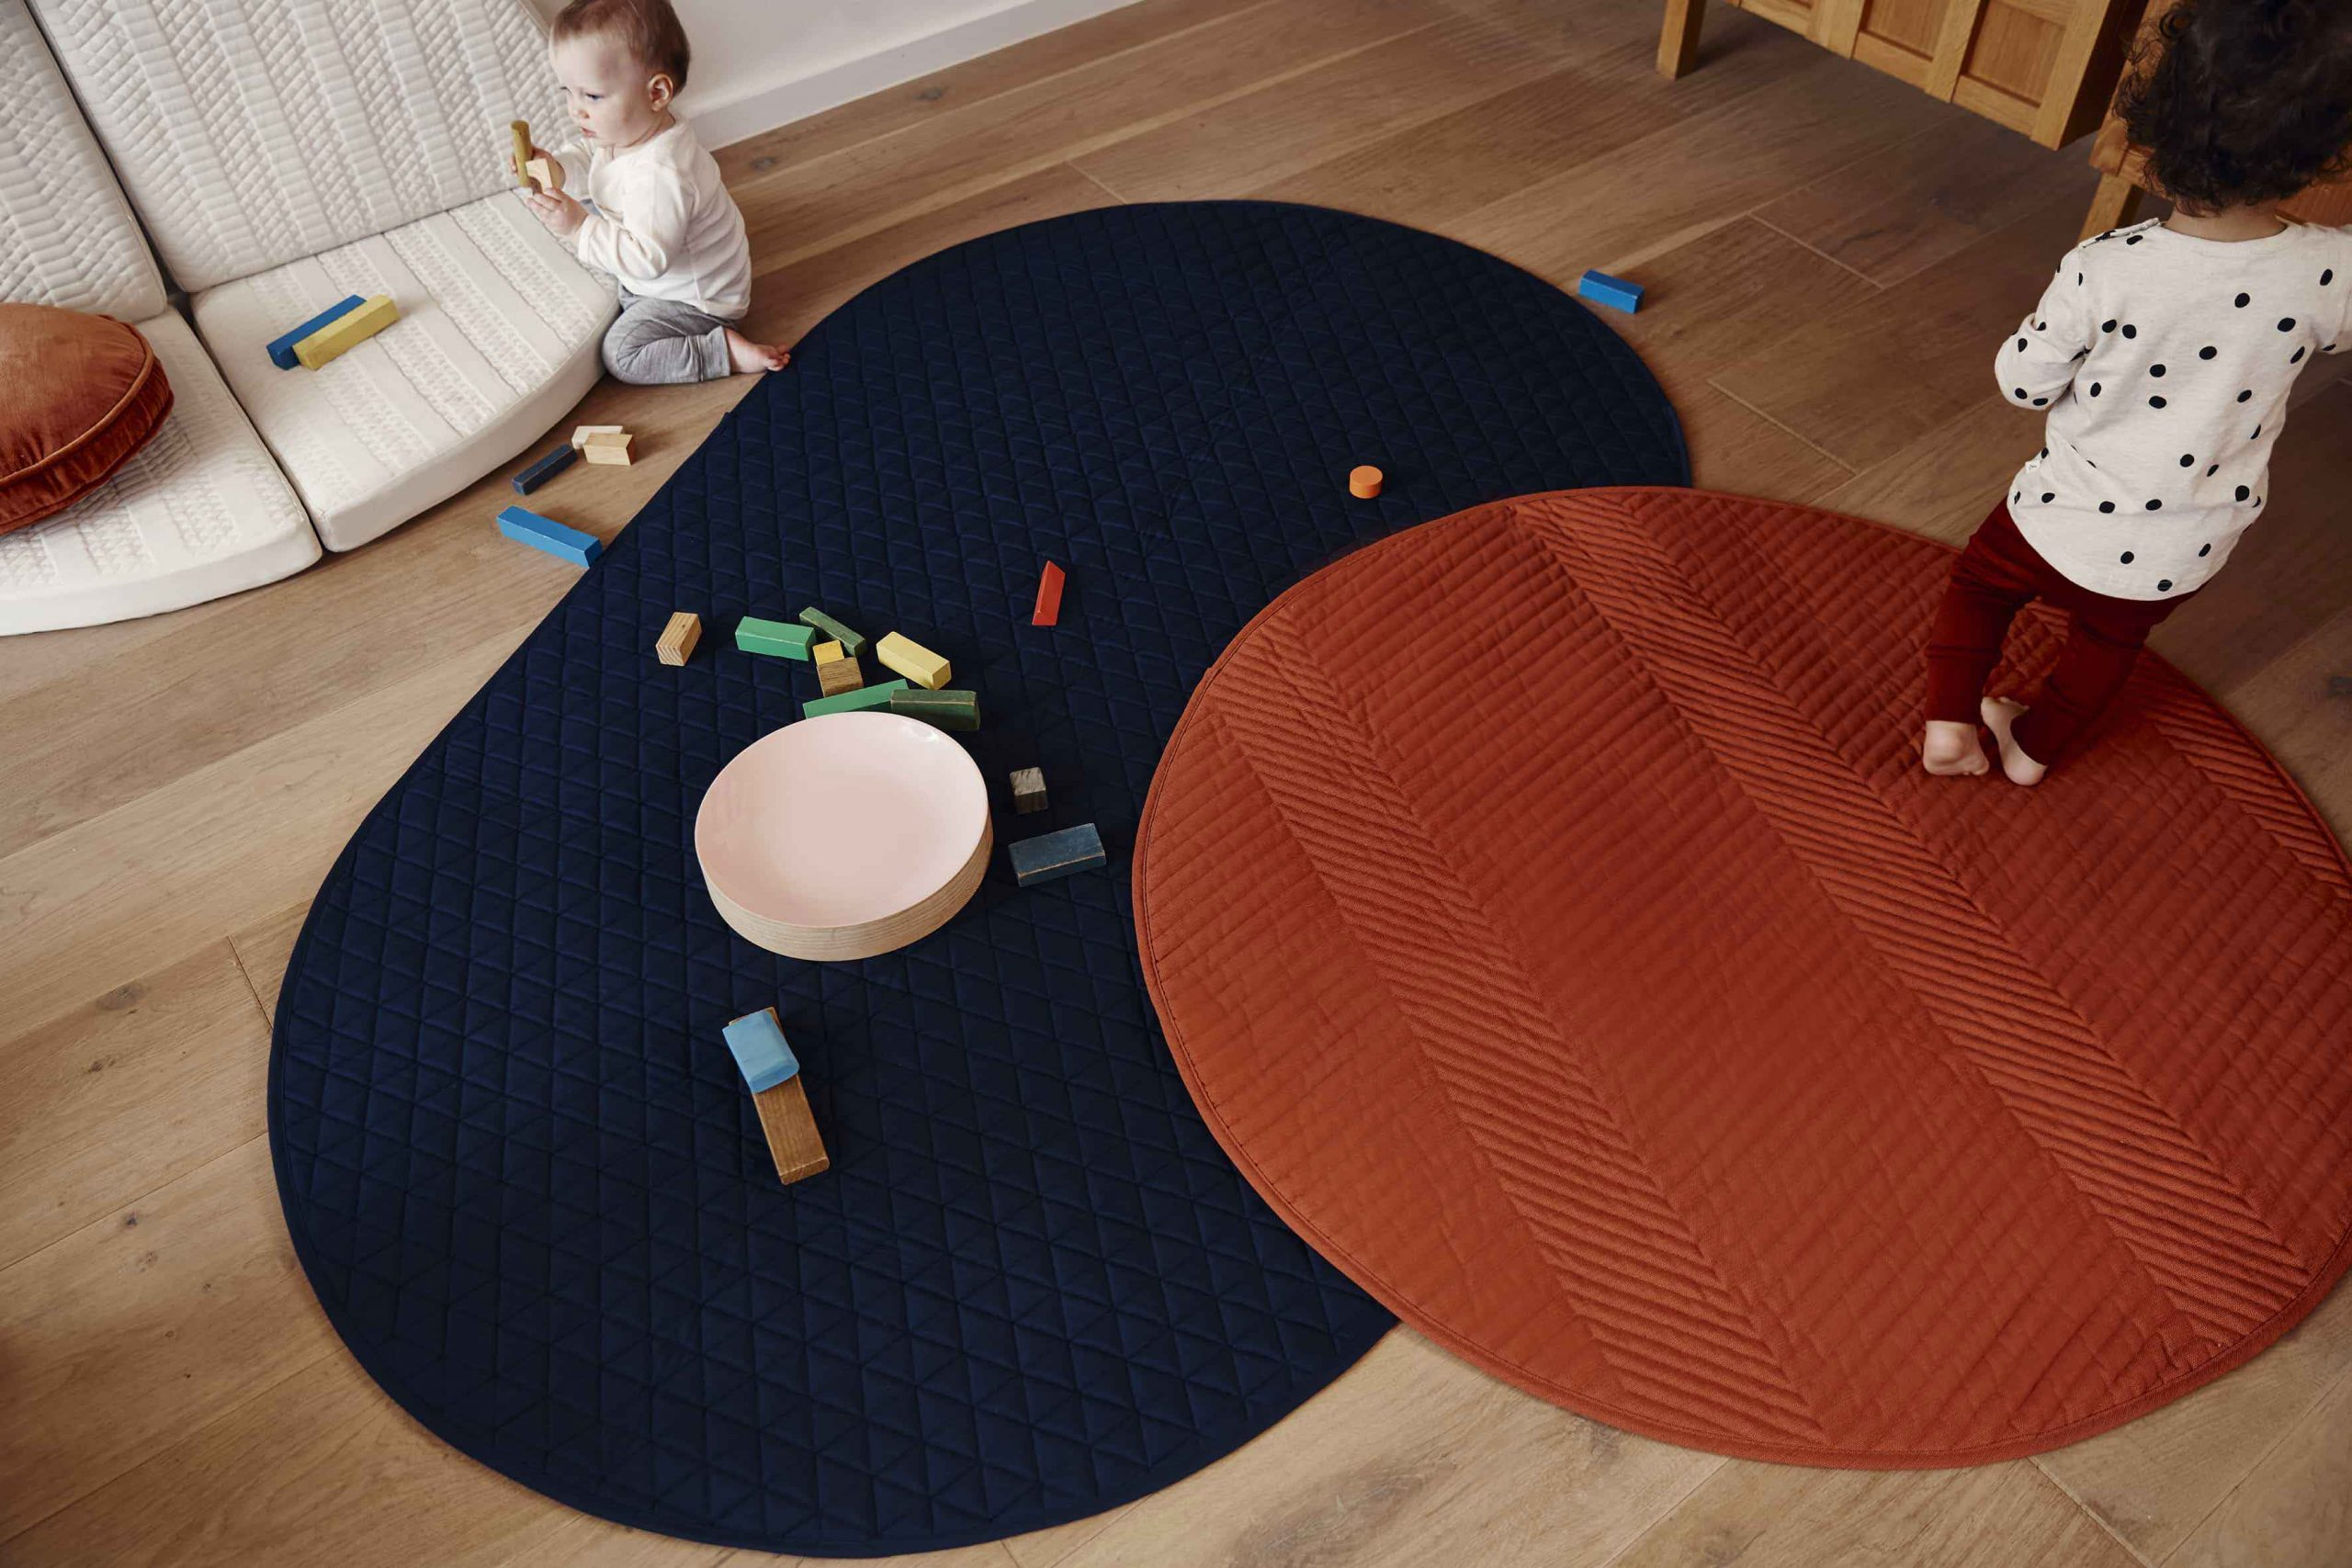 The Playmat That Doesn't Look Like a Playmat – jnr.life Is An Interior Designer's Dream